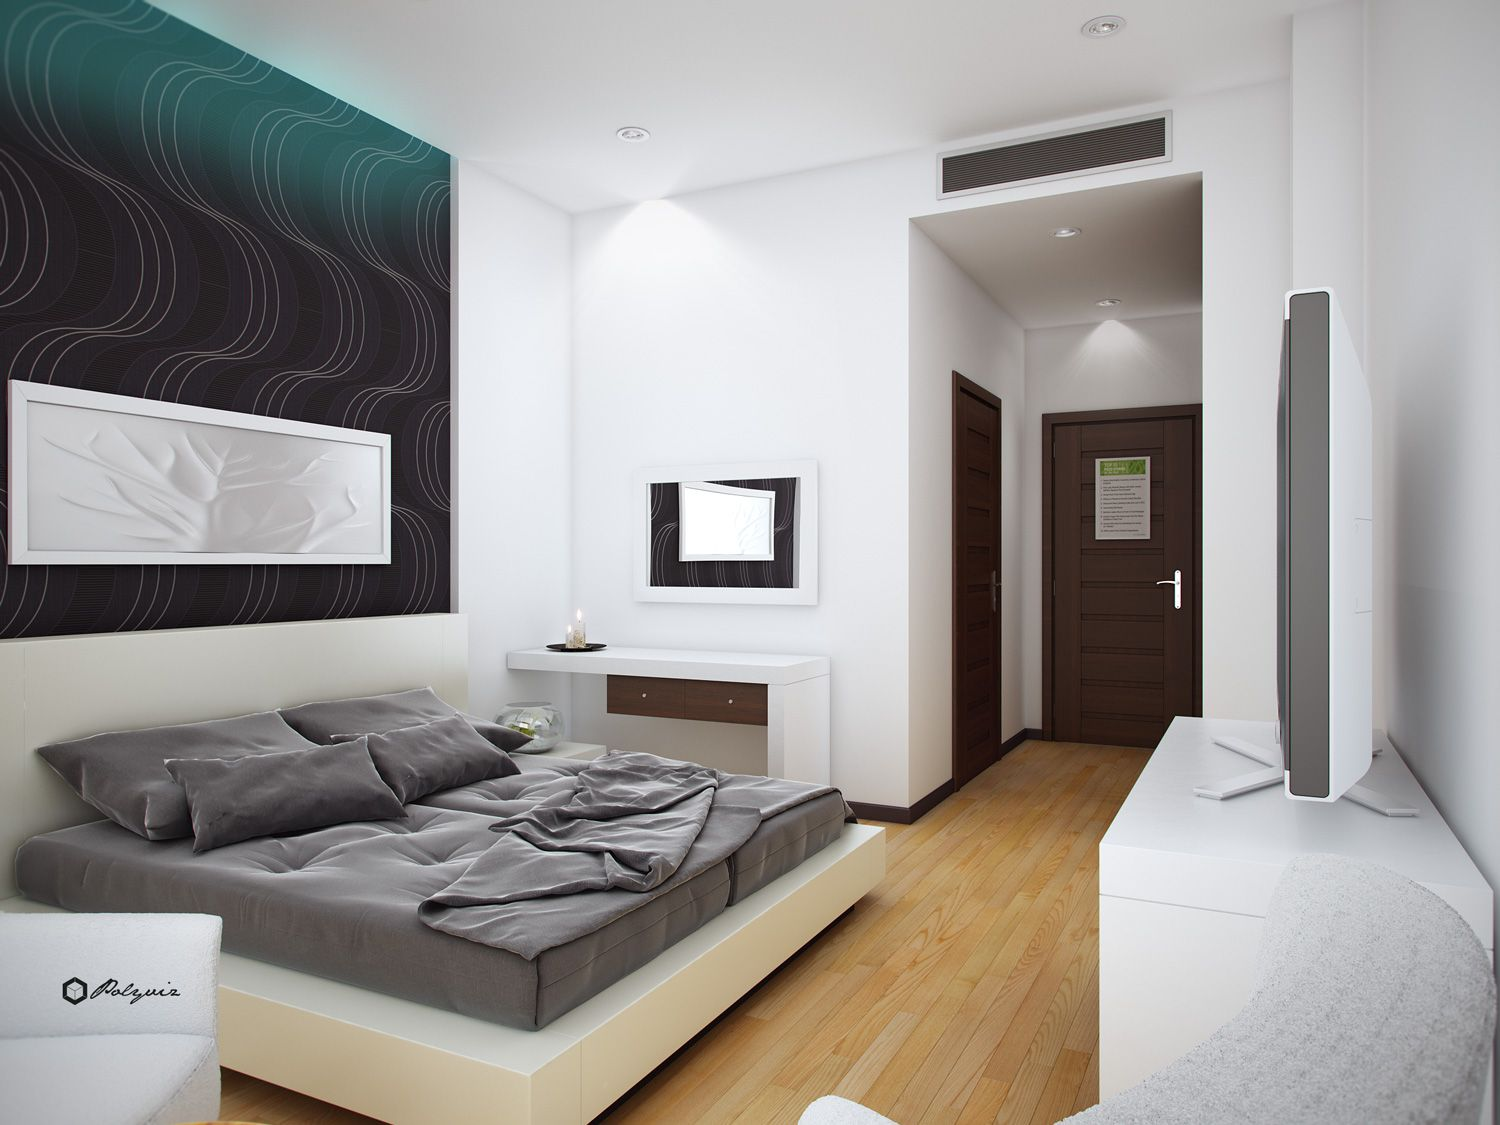 Modern hotel room design google search room design for Interior design inspiration rooms